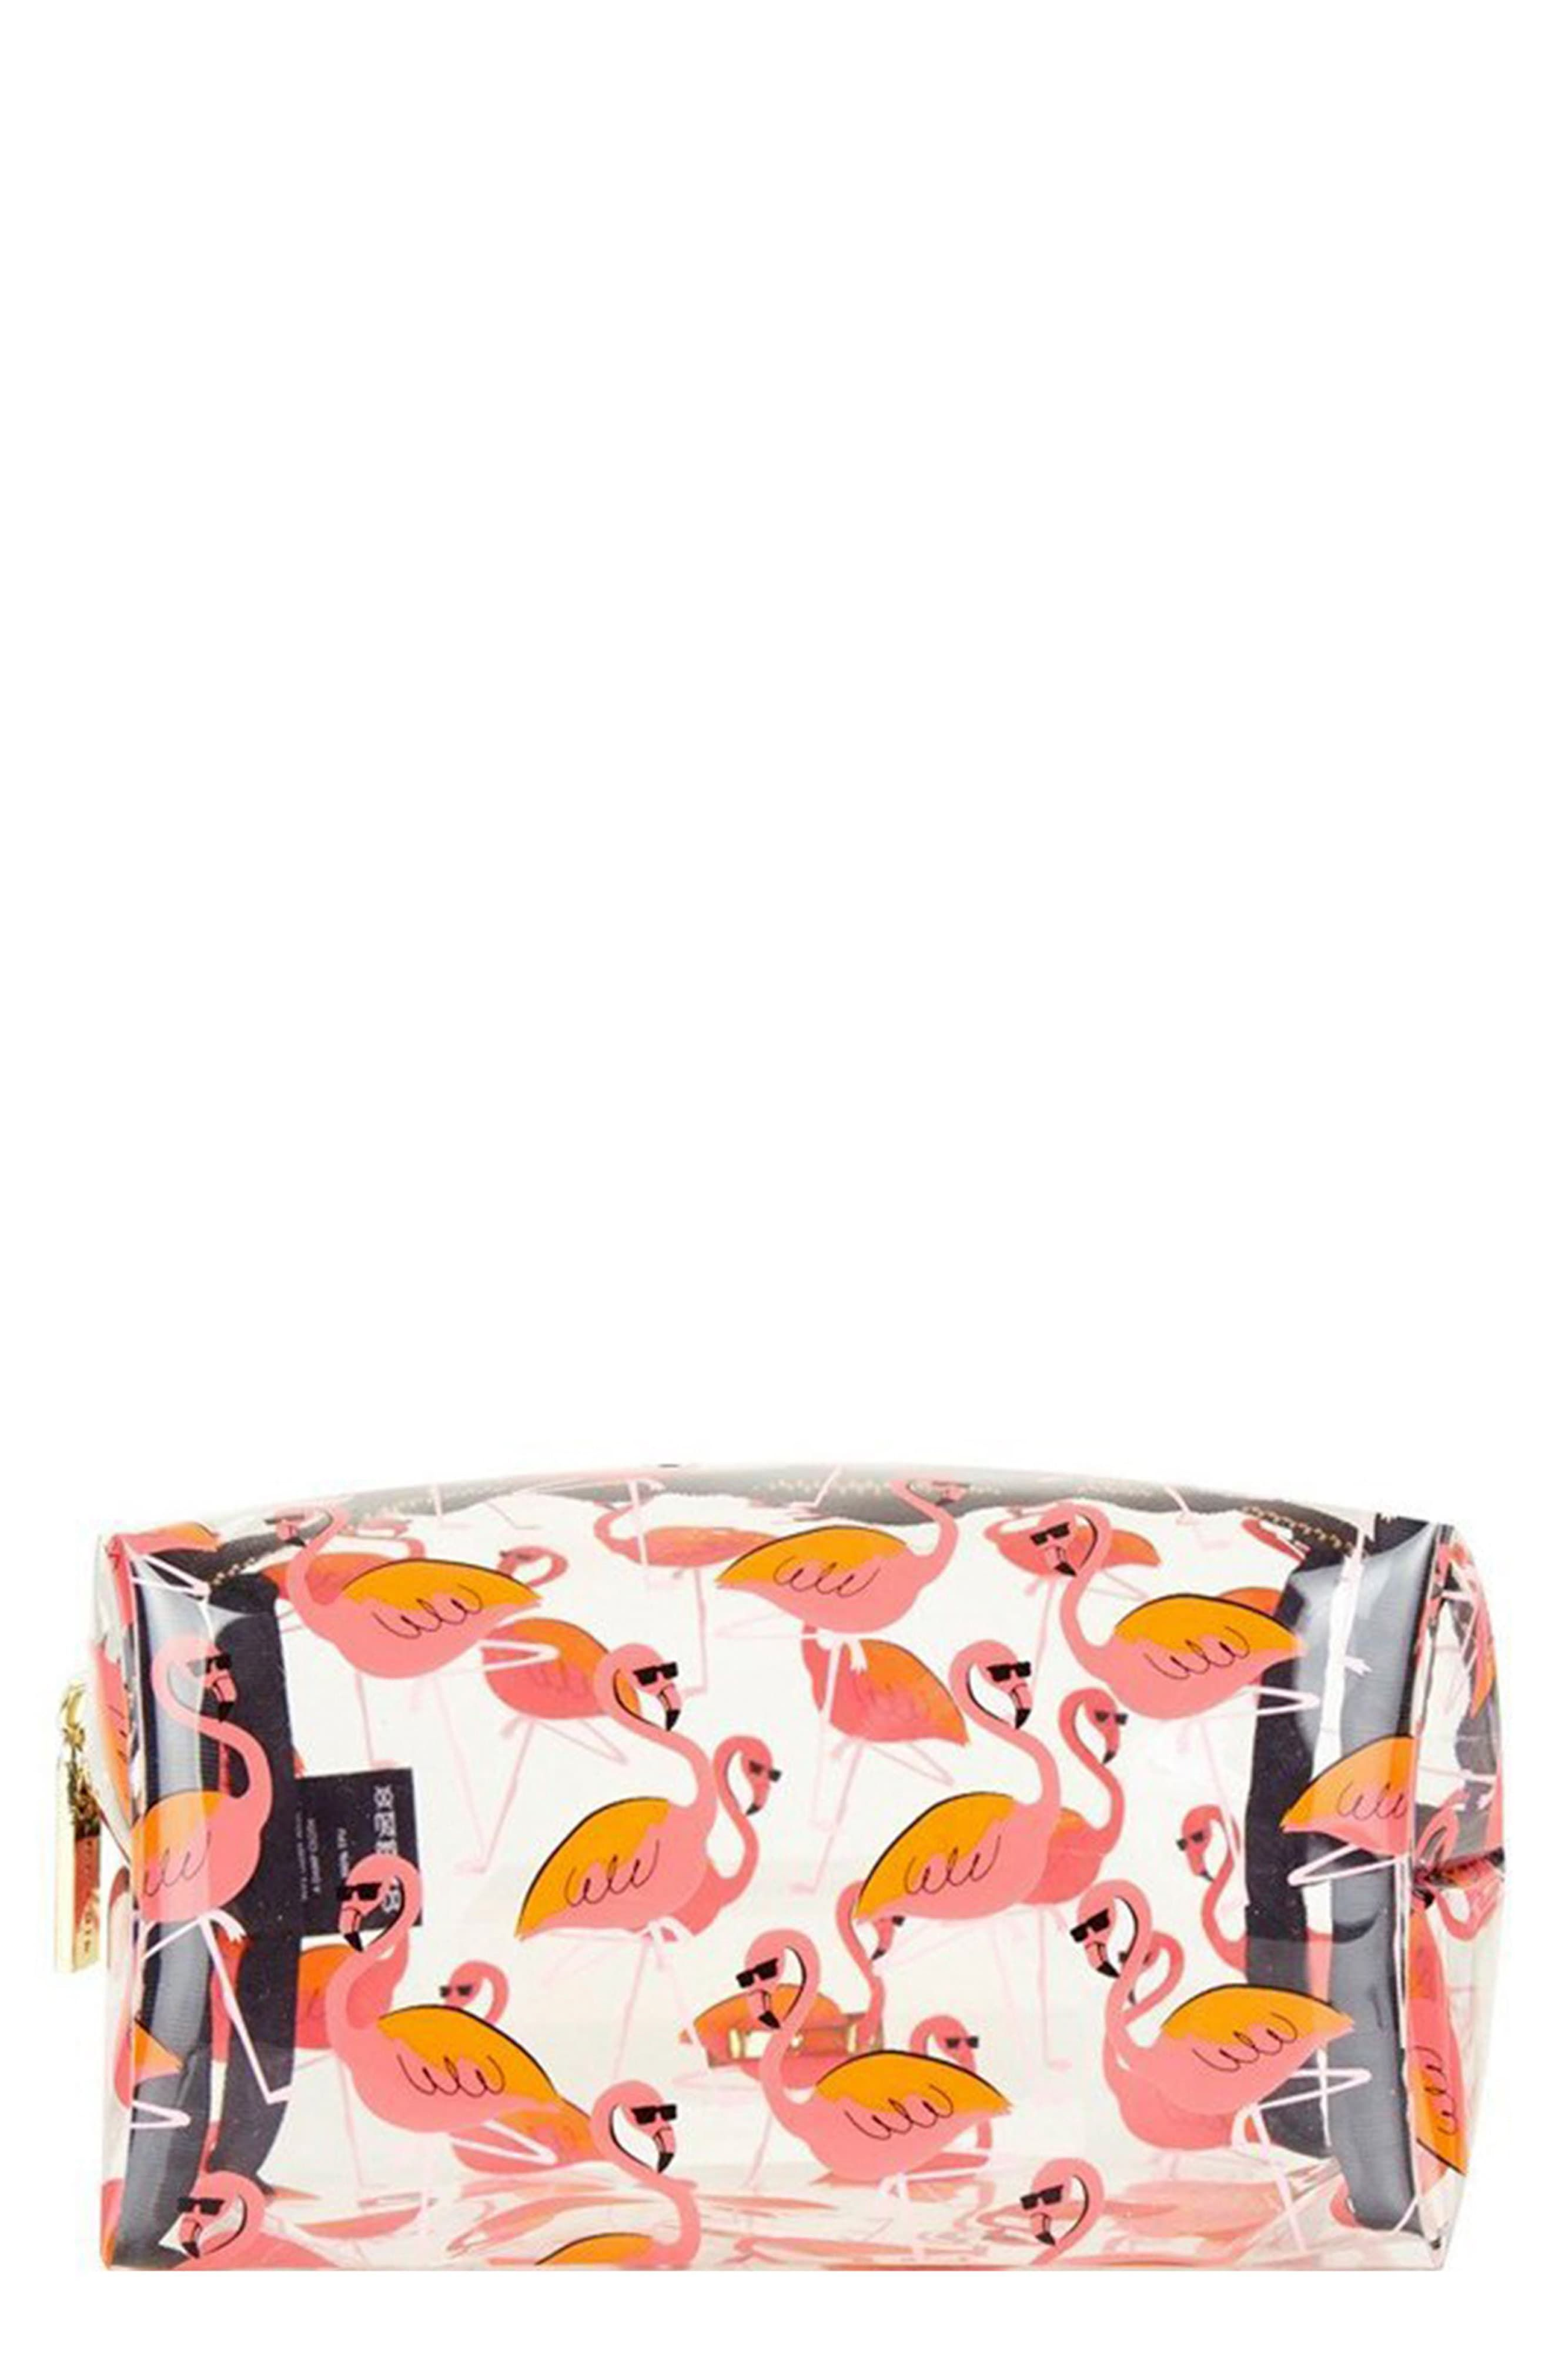 Skinny Dip Clear Flamingo Makeup Bag, Size One Size No